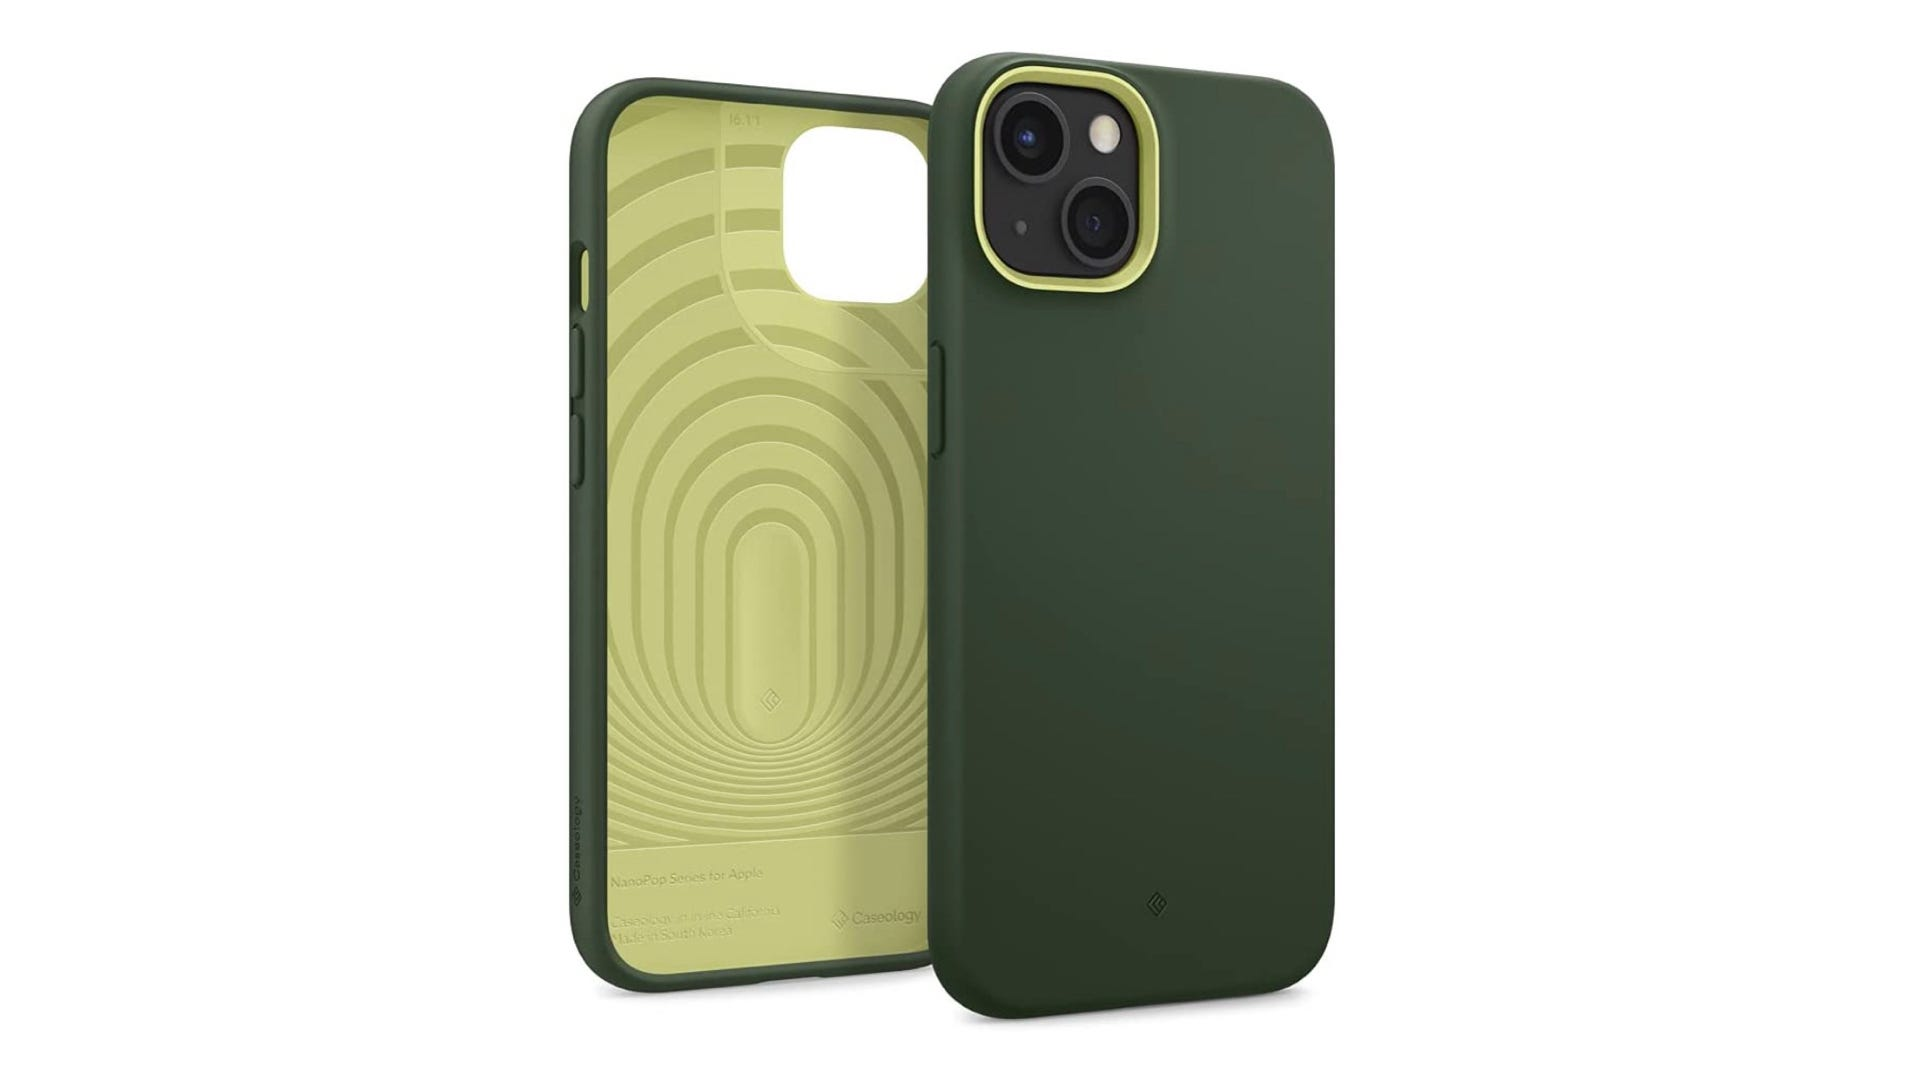 Caseology iPhone 13 Pro case